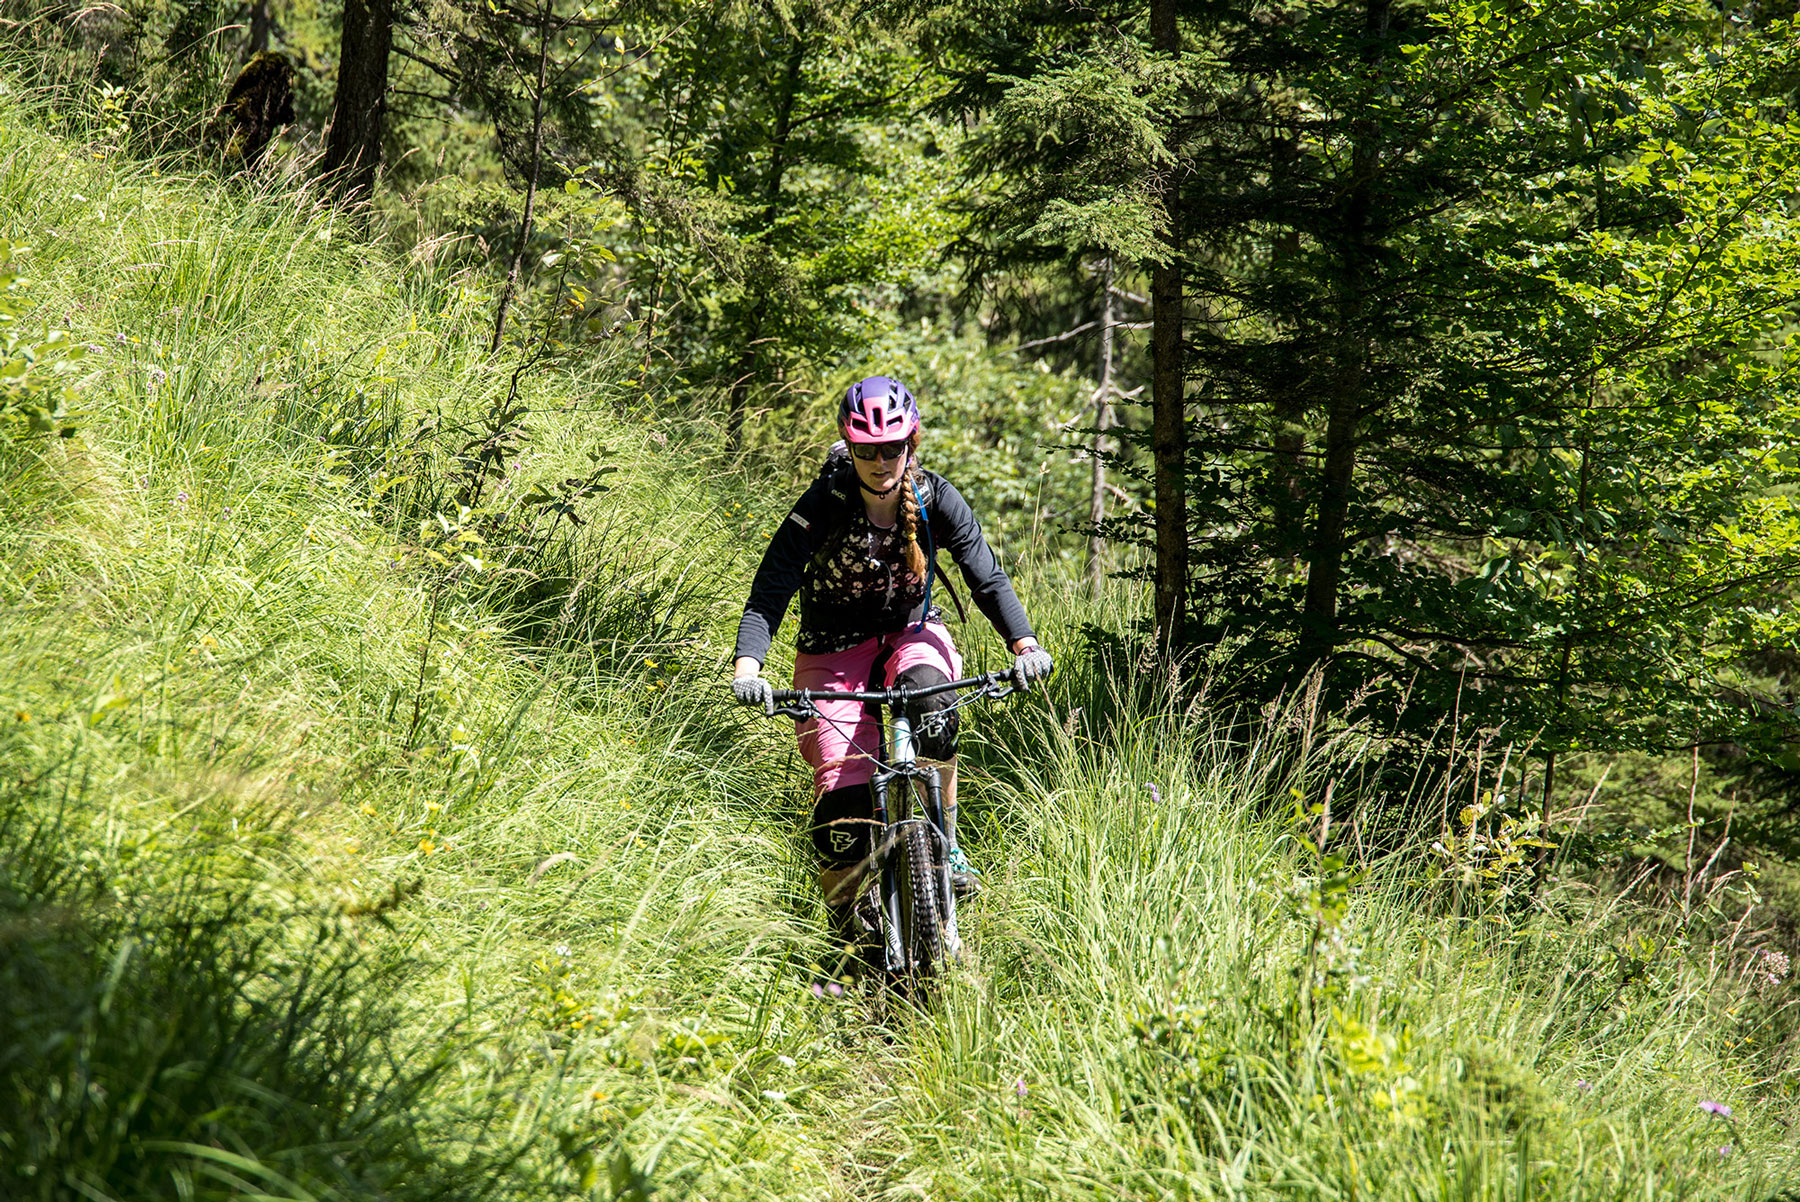 lisa-amenda-munichmountaingirls-Mountainbiken-mtb-women-Tassilo-Pritzl